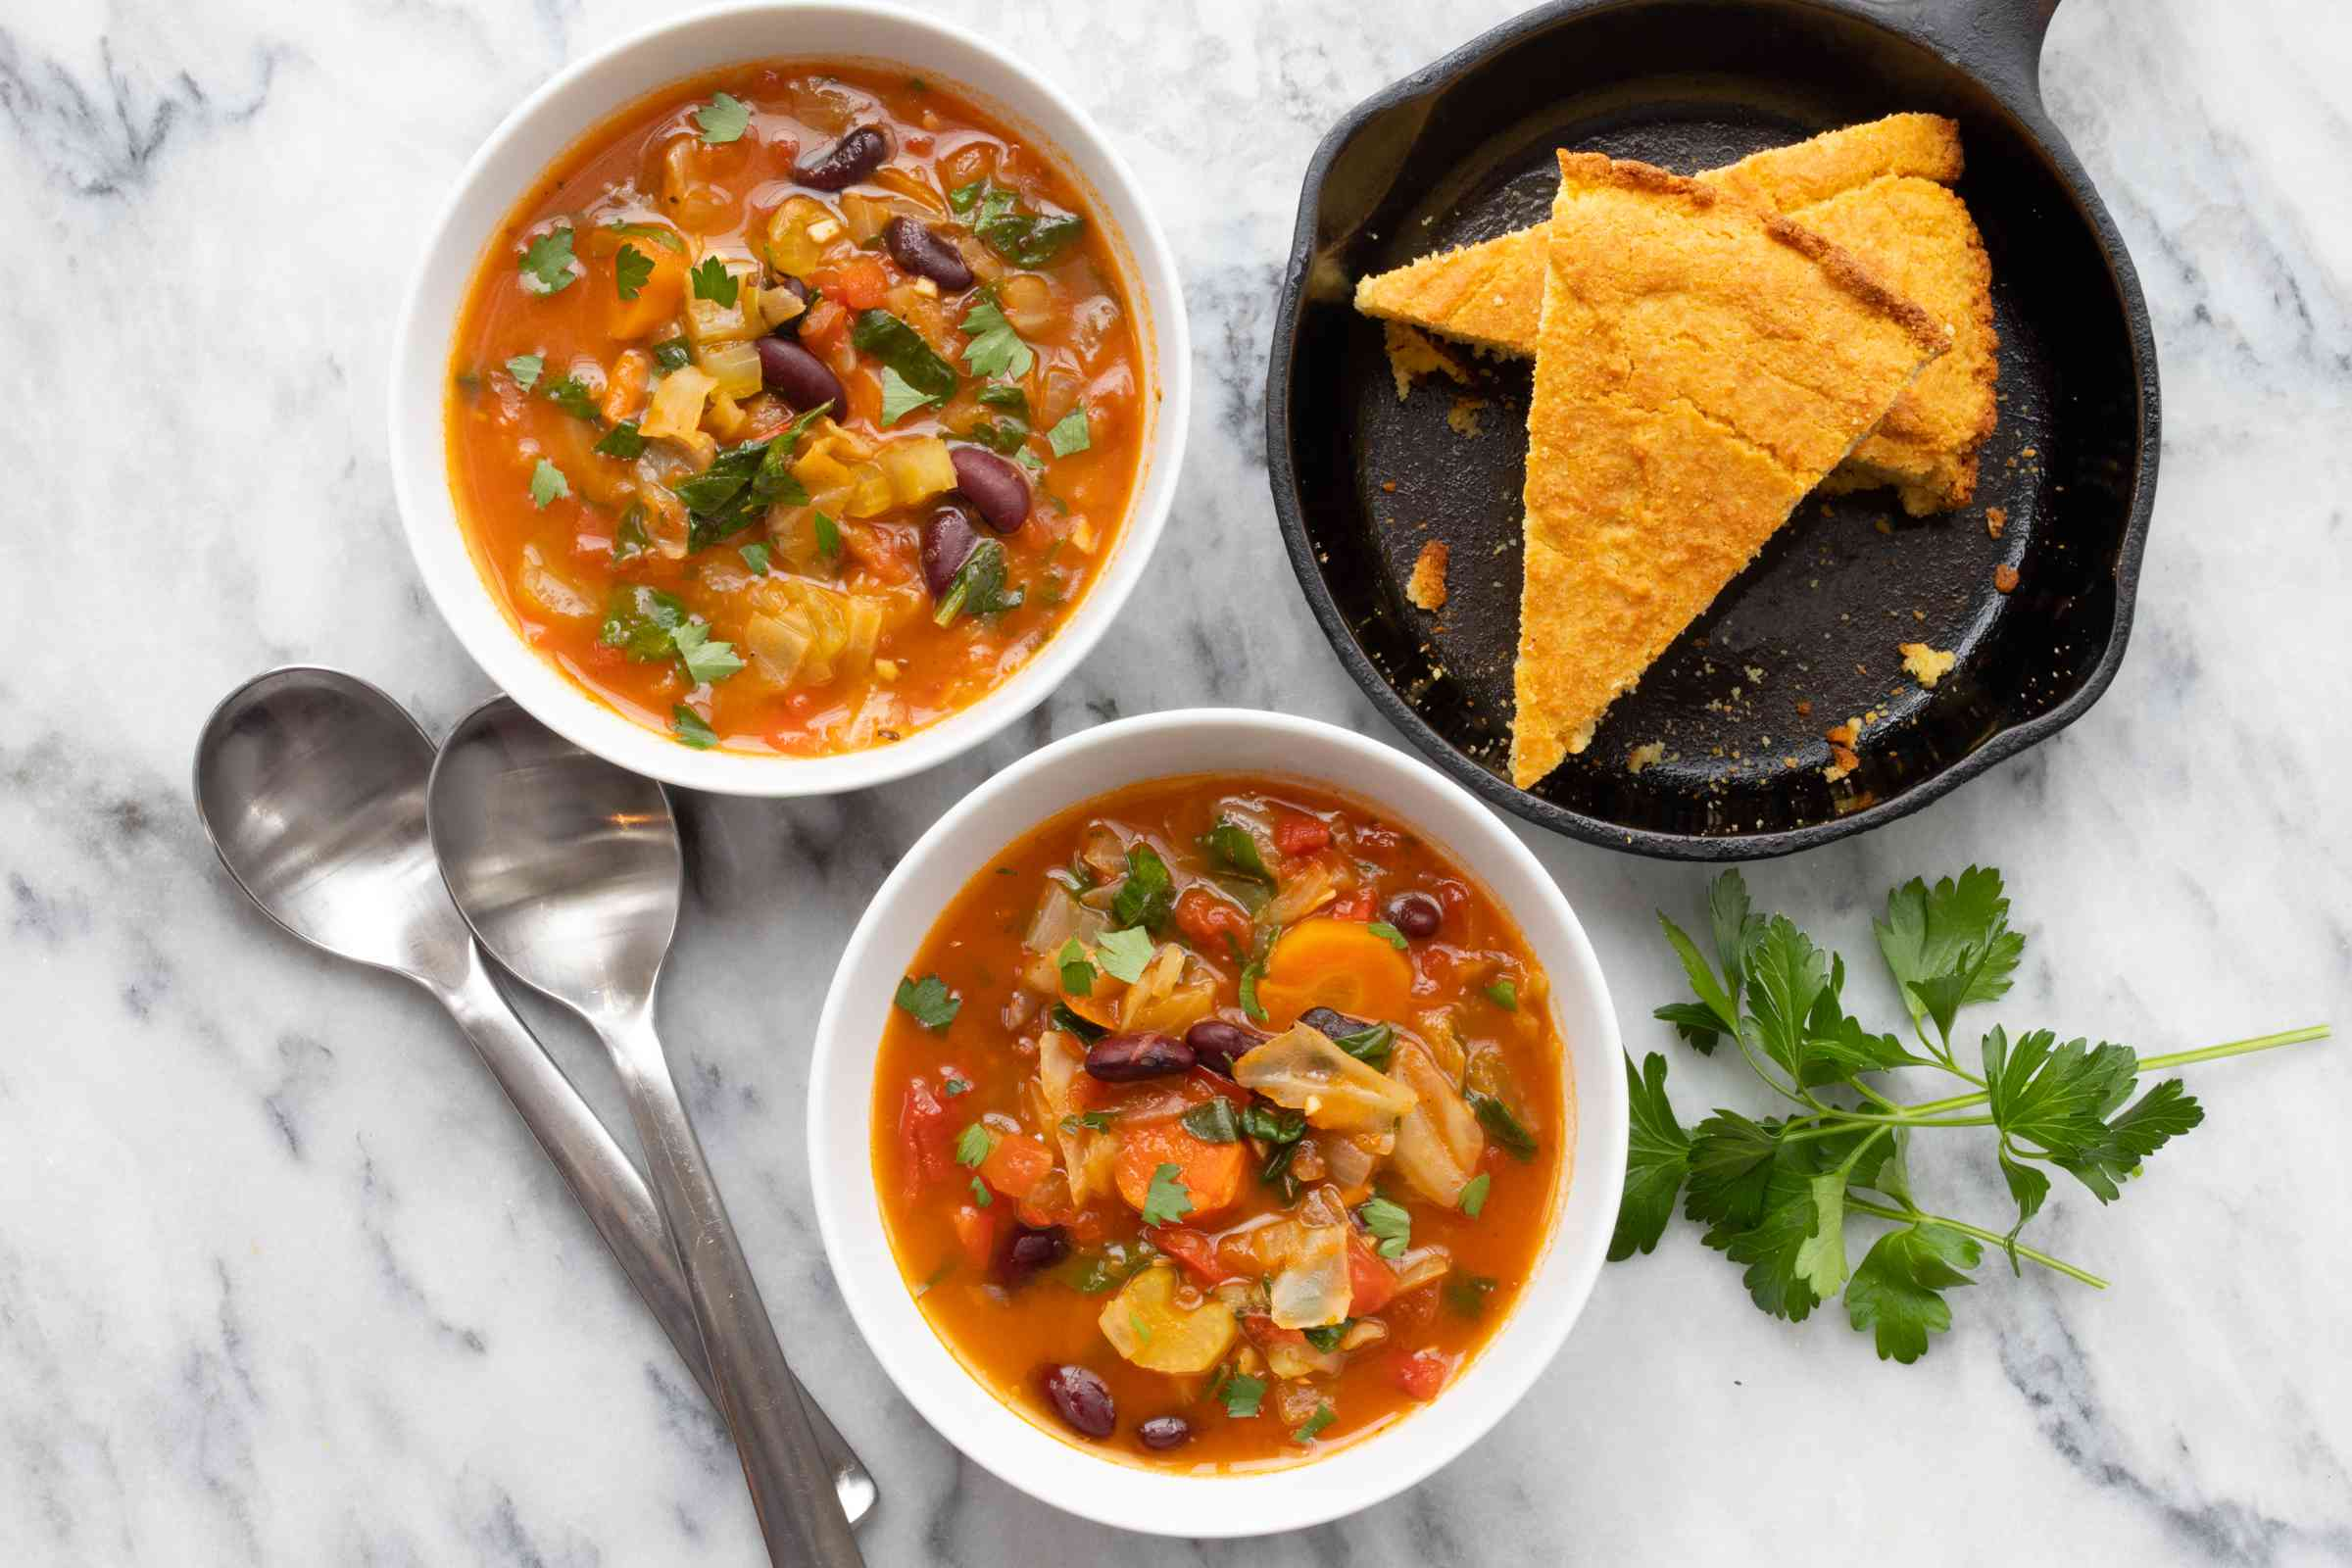 bowls of vegetable soup with cornbread